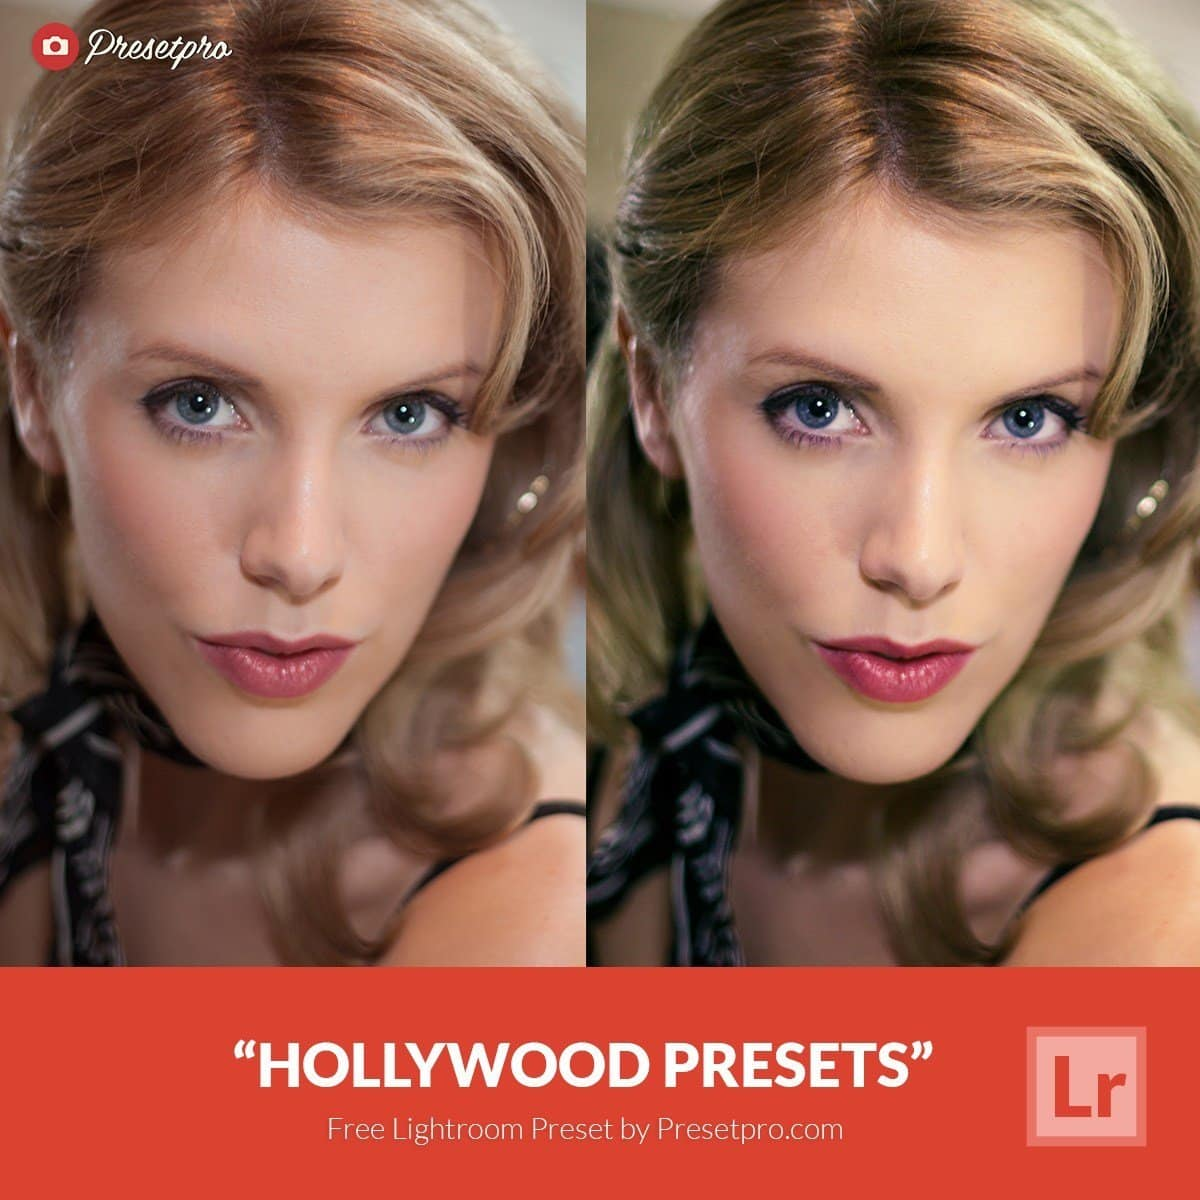 Free-Lightroom-Preset-Hollywood-Presetpro.com